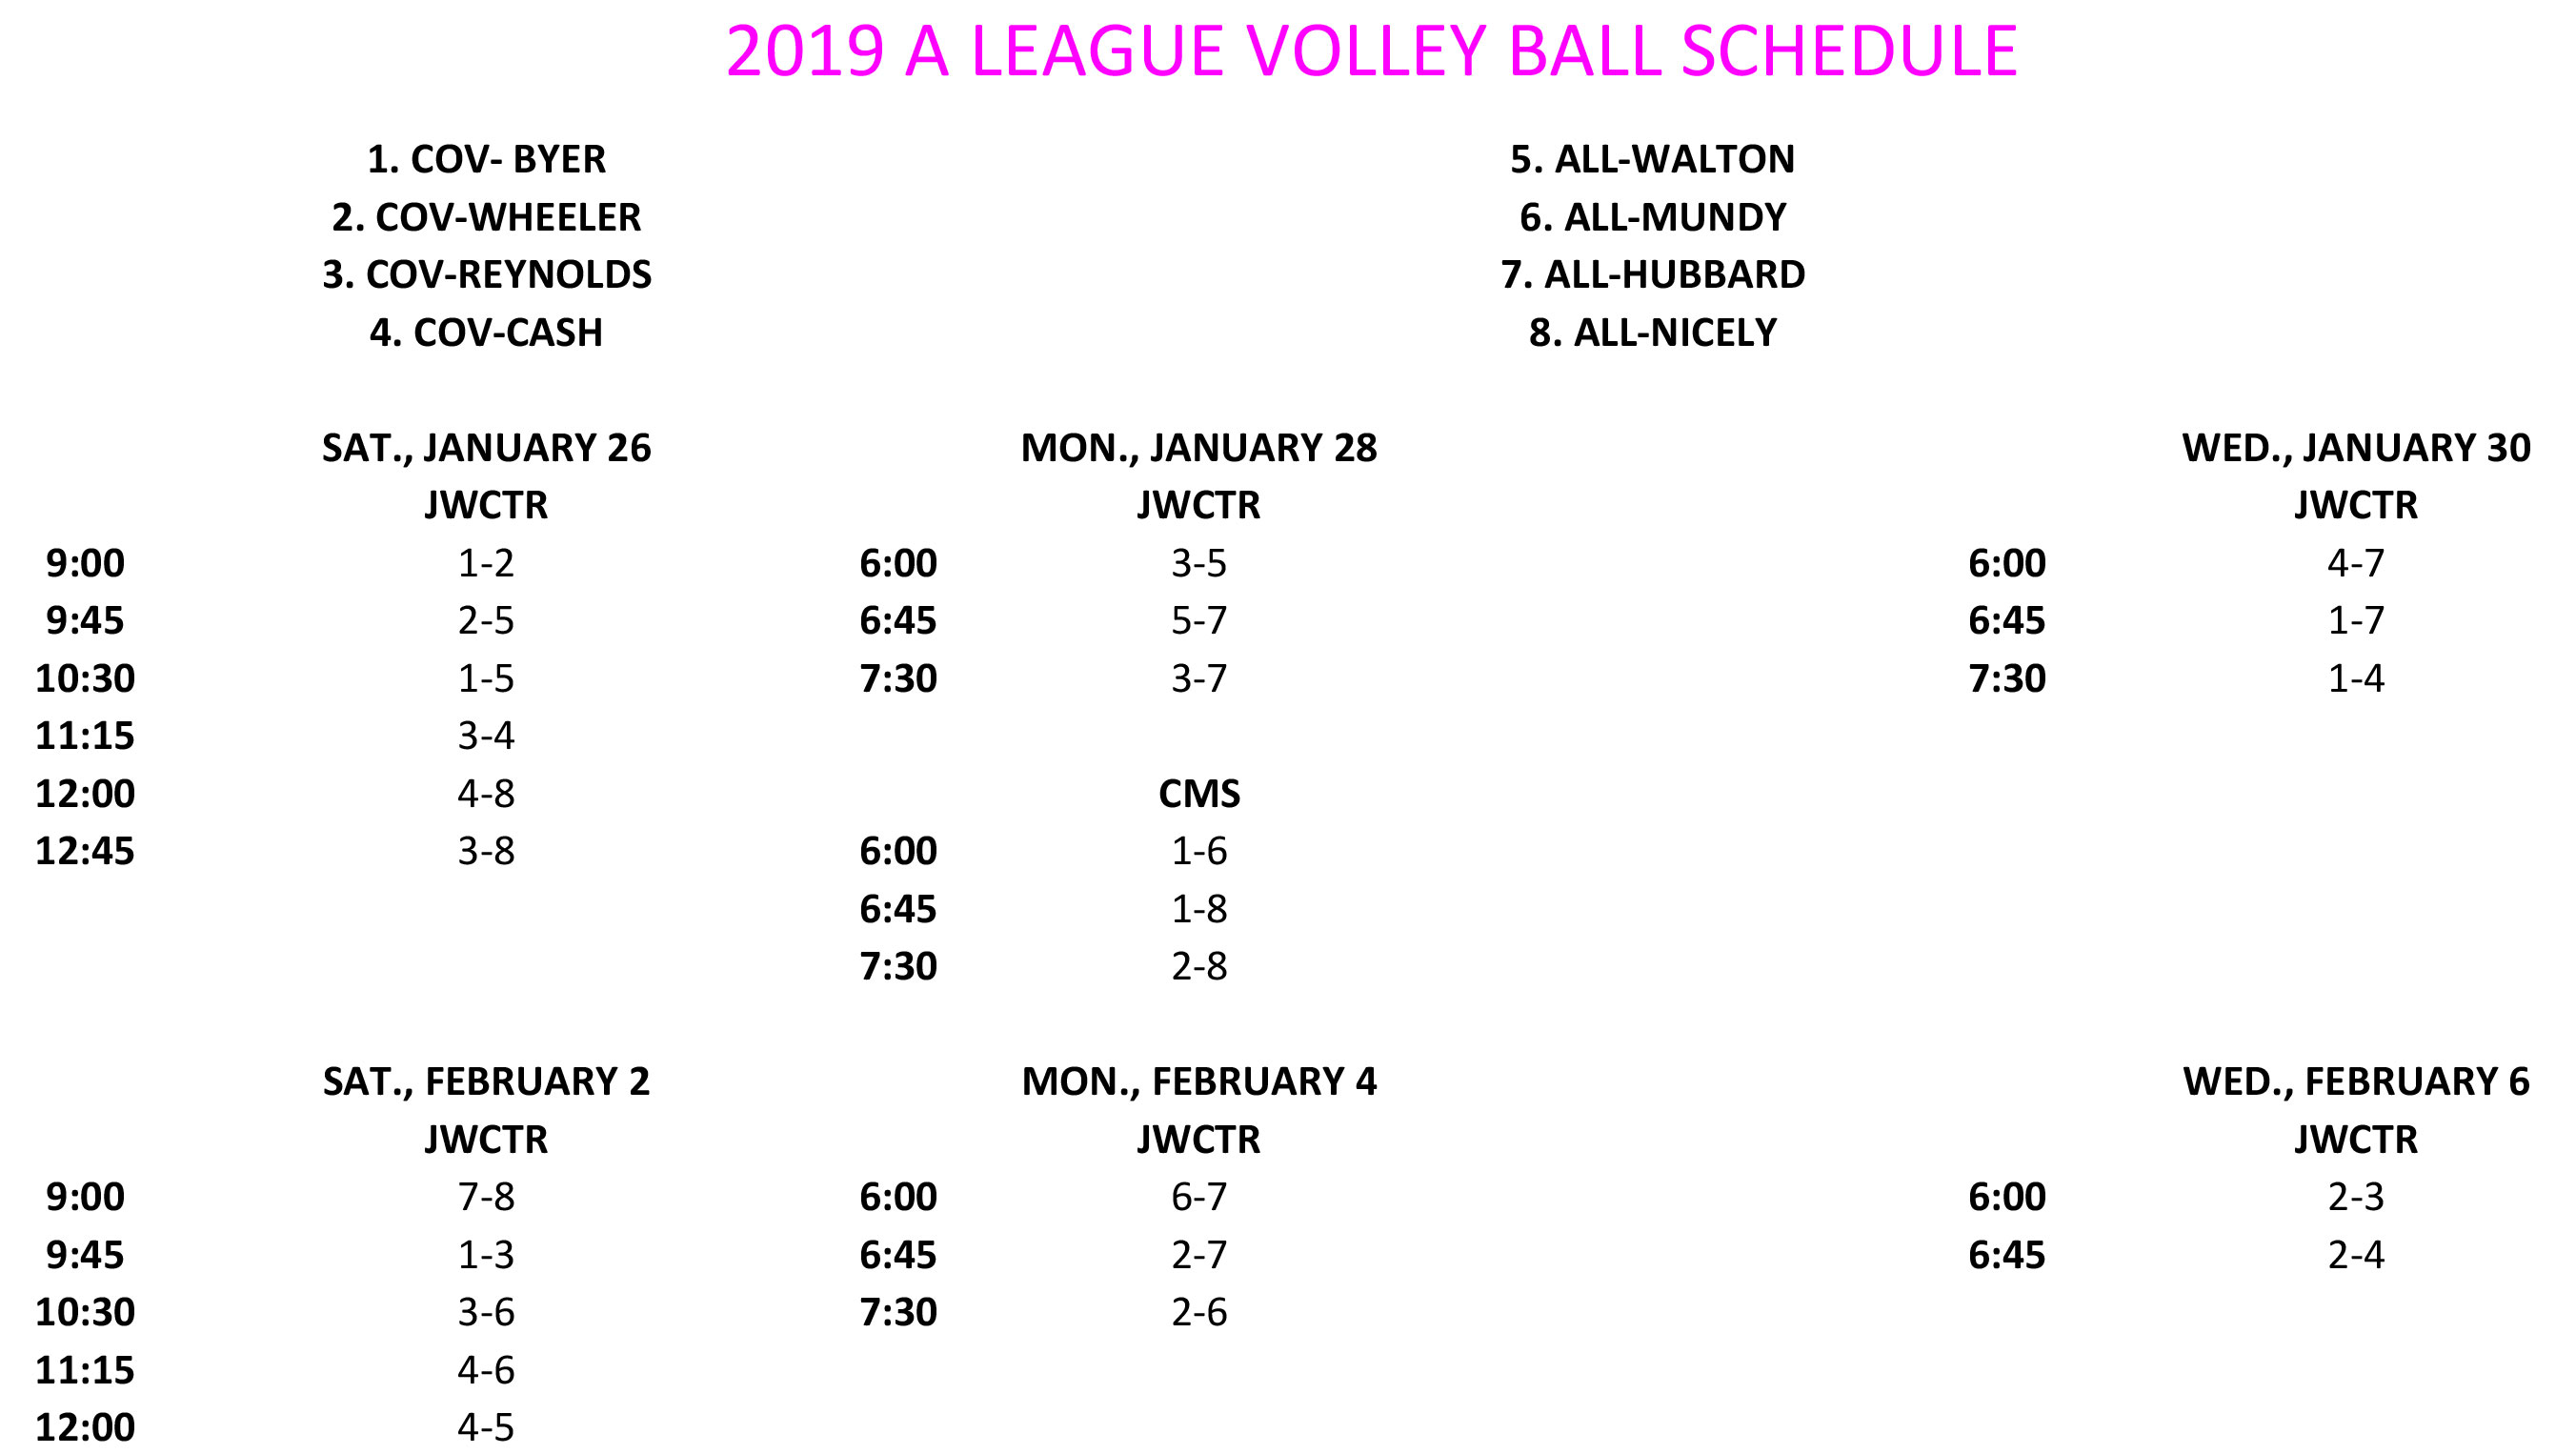 2019 A LEAGUE VOLLEYBALL SCHEDULE 2